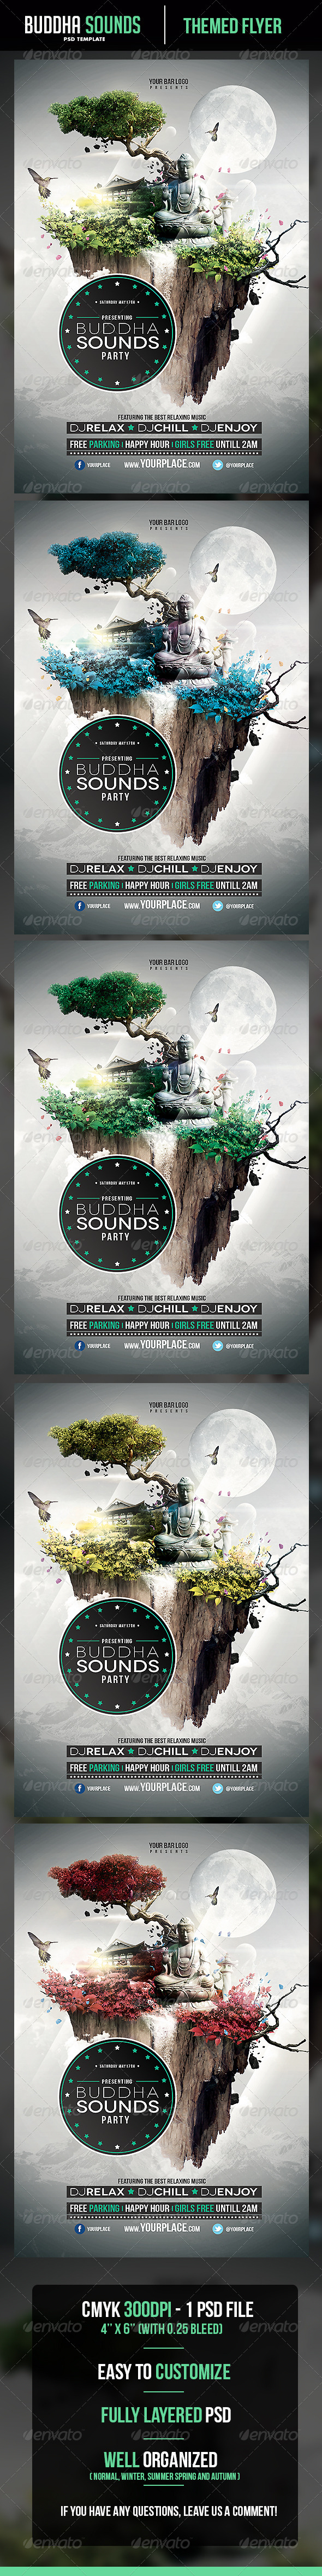 Buddha Sounds Flyer Template - Clubs & Parties Events